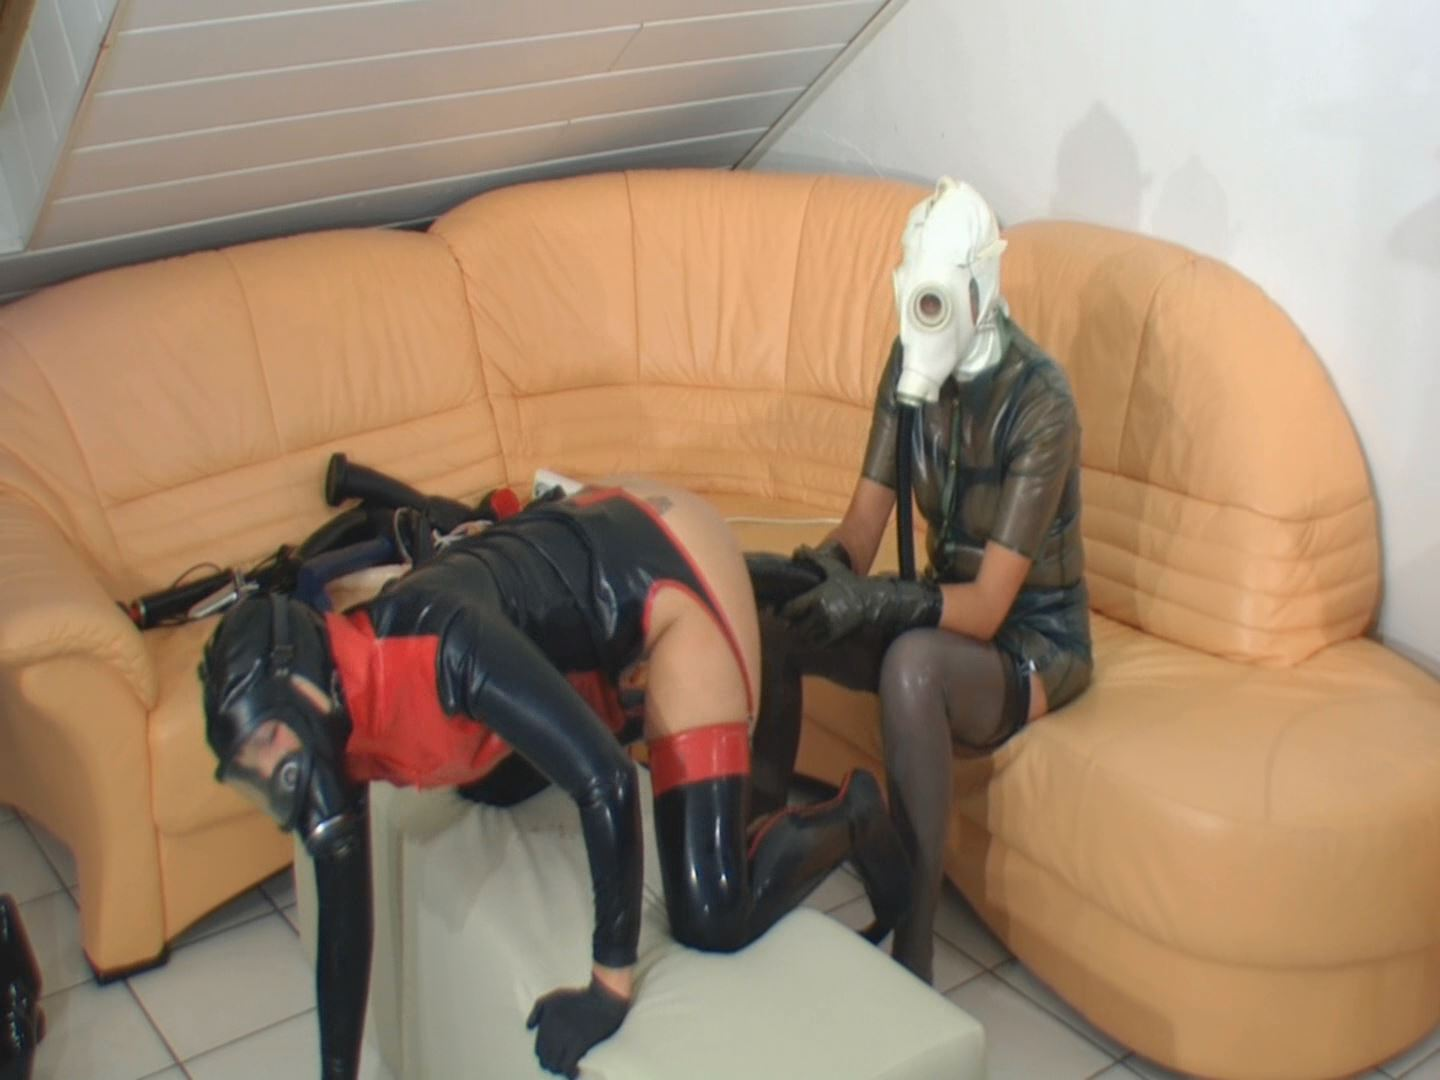 [SPEKULA] Horny gasmask [FULL HD][1080p][WMV]